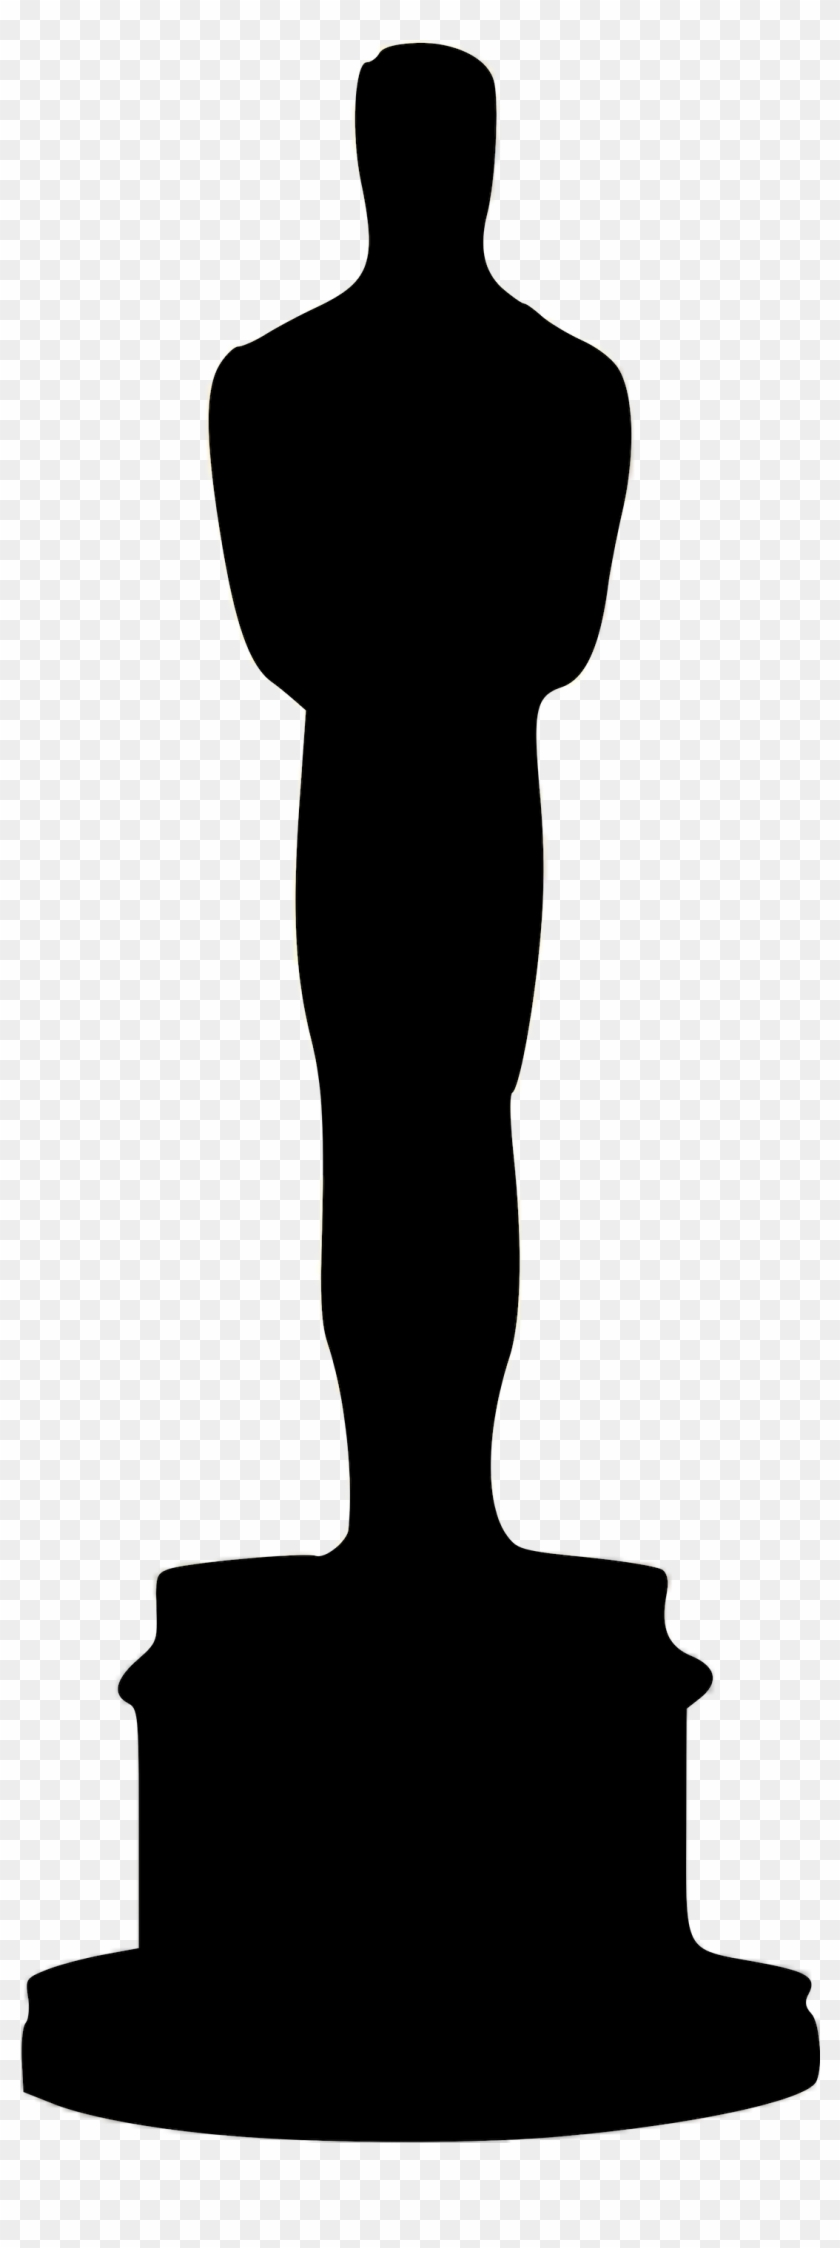 Oscar Cliparts Free Download On Png - Academy Award Silhouette Png #90039